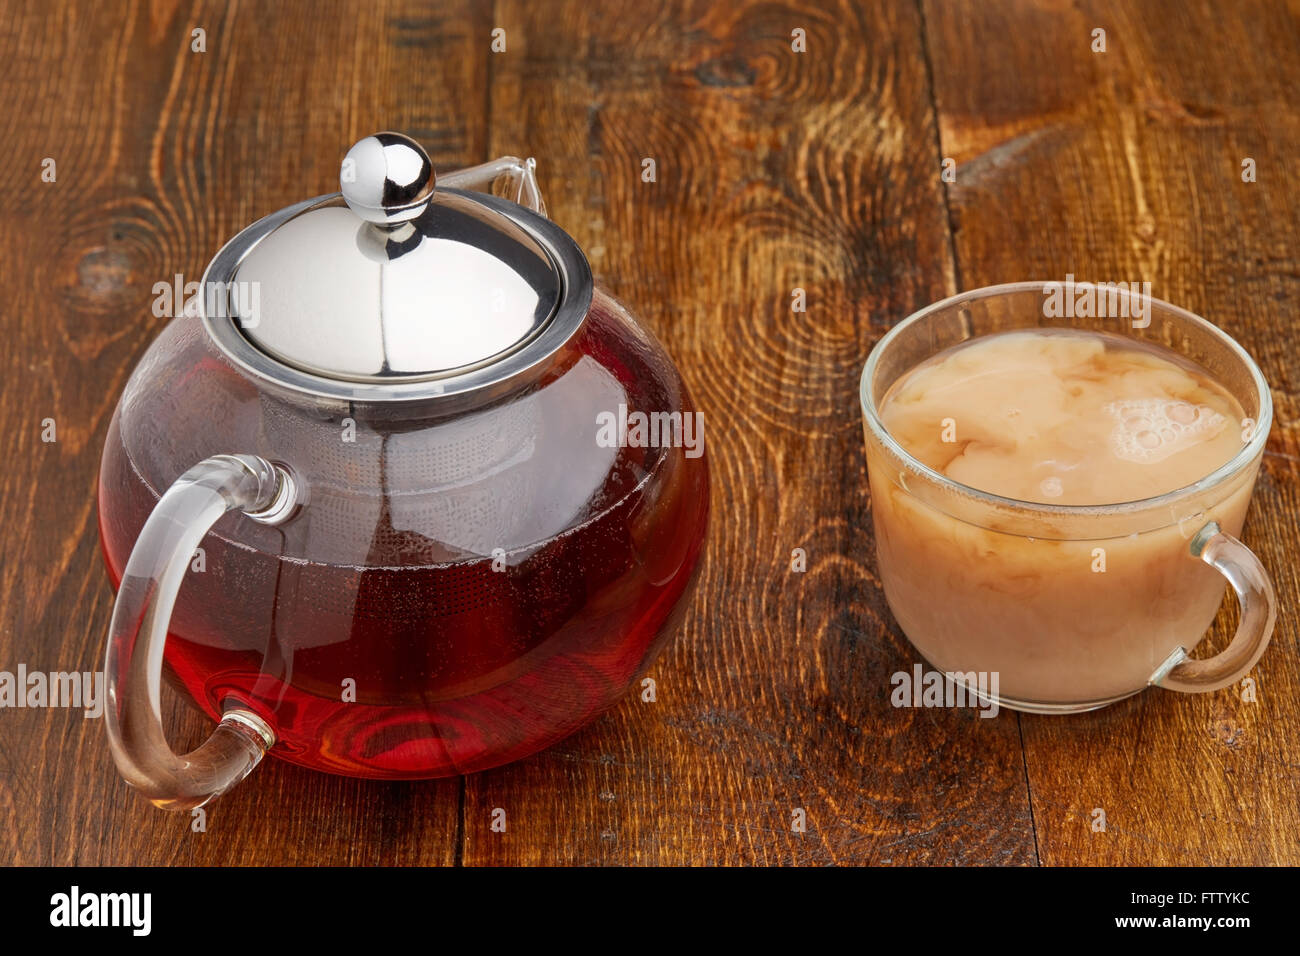 Set of glass teapot and teacup of black tea with milk on wooden table Stock Photo